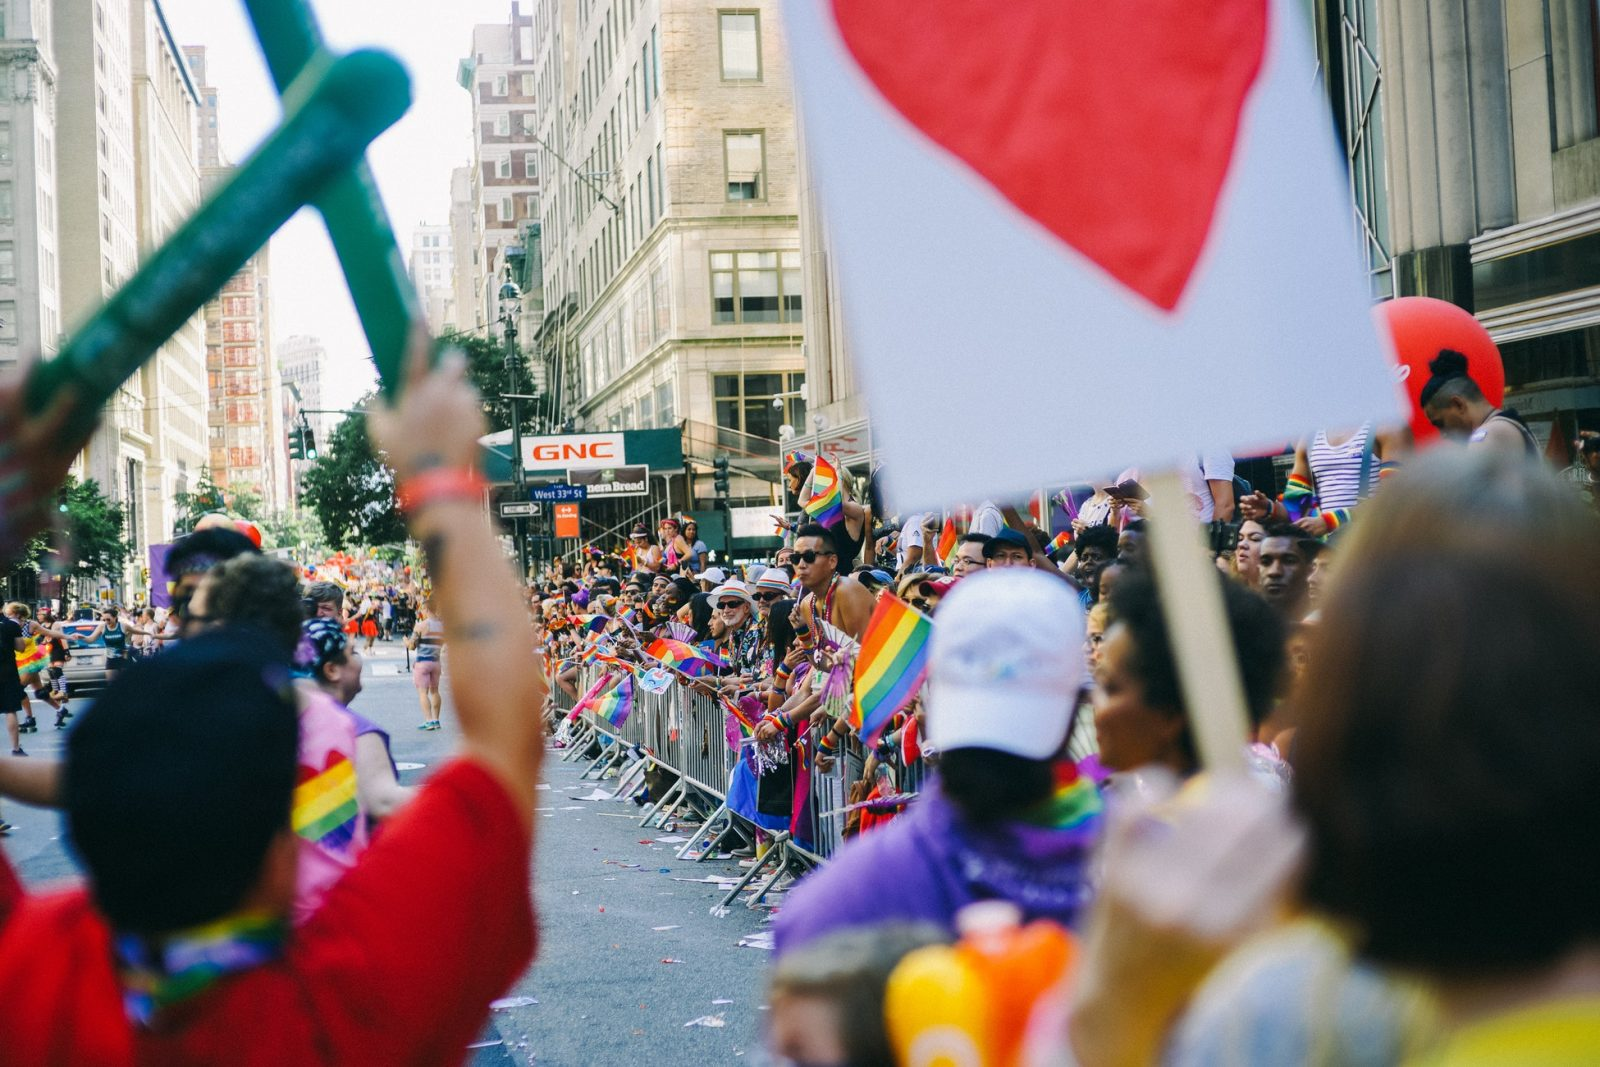 Promote your LGBT hotel for World Pride this summer